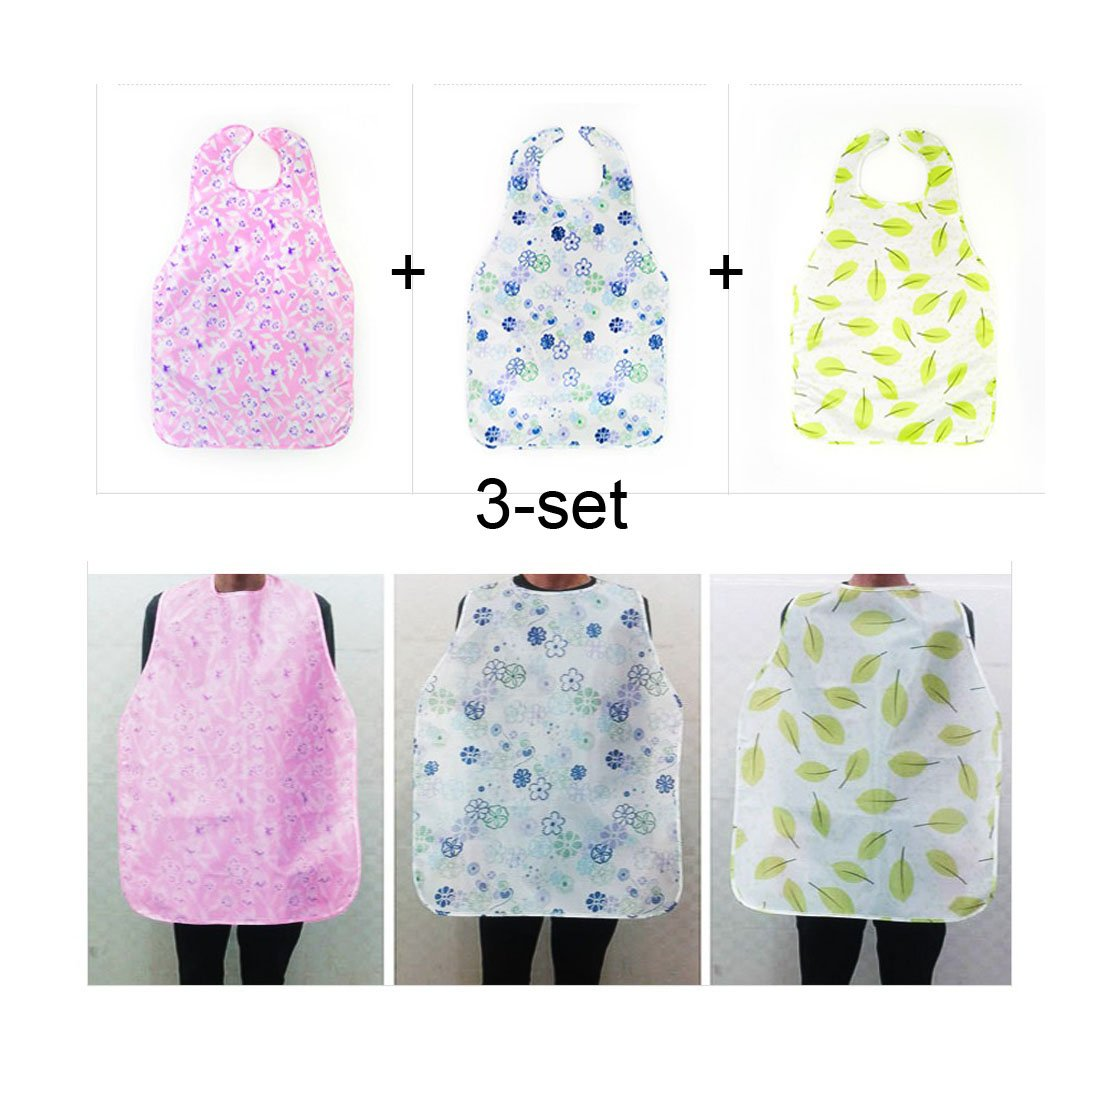 Long Large Size Adult Bibs / 3 Pack/Clothing Protector- Absorbent, Waterproof. Keeps Mealtime Neat